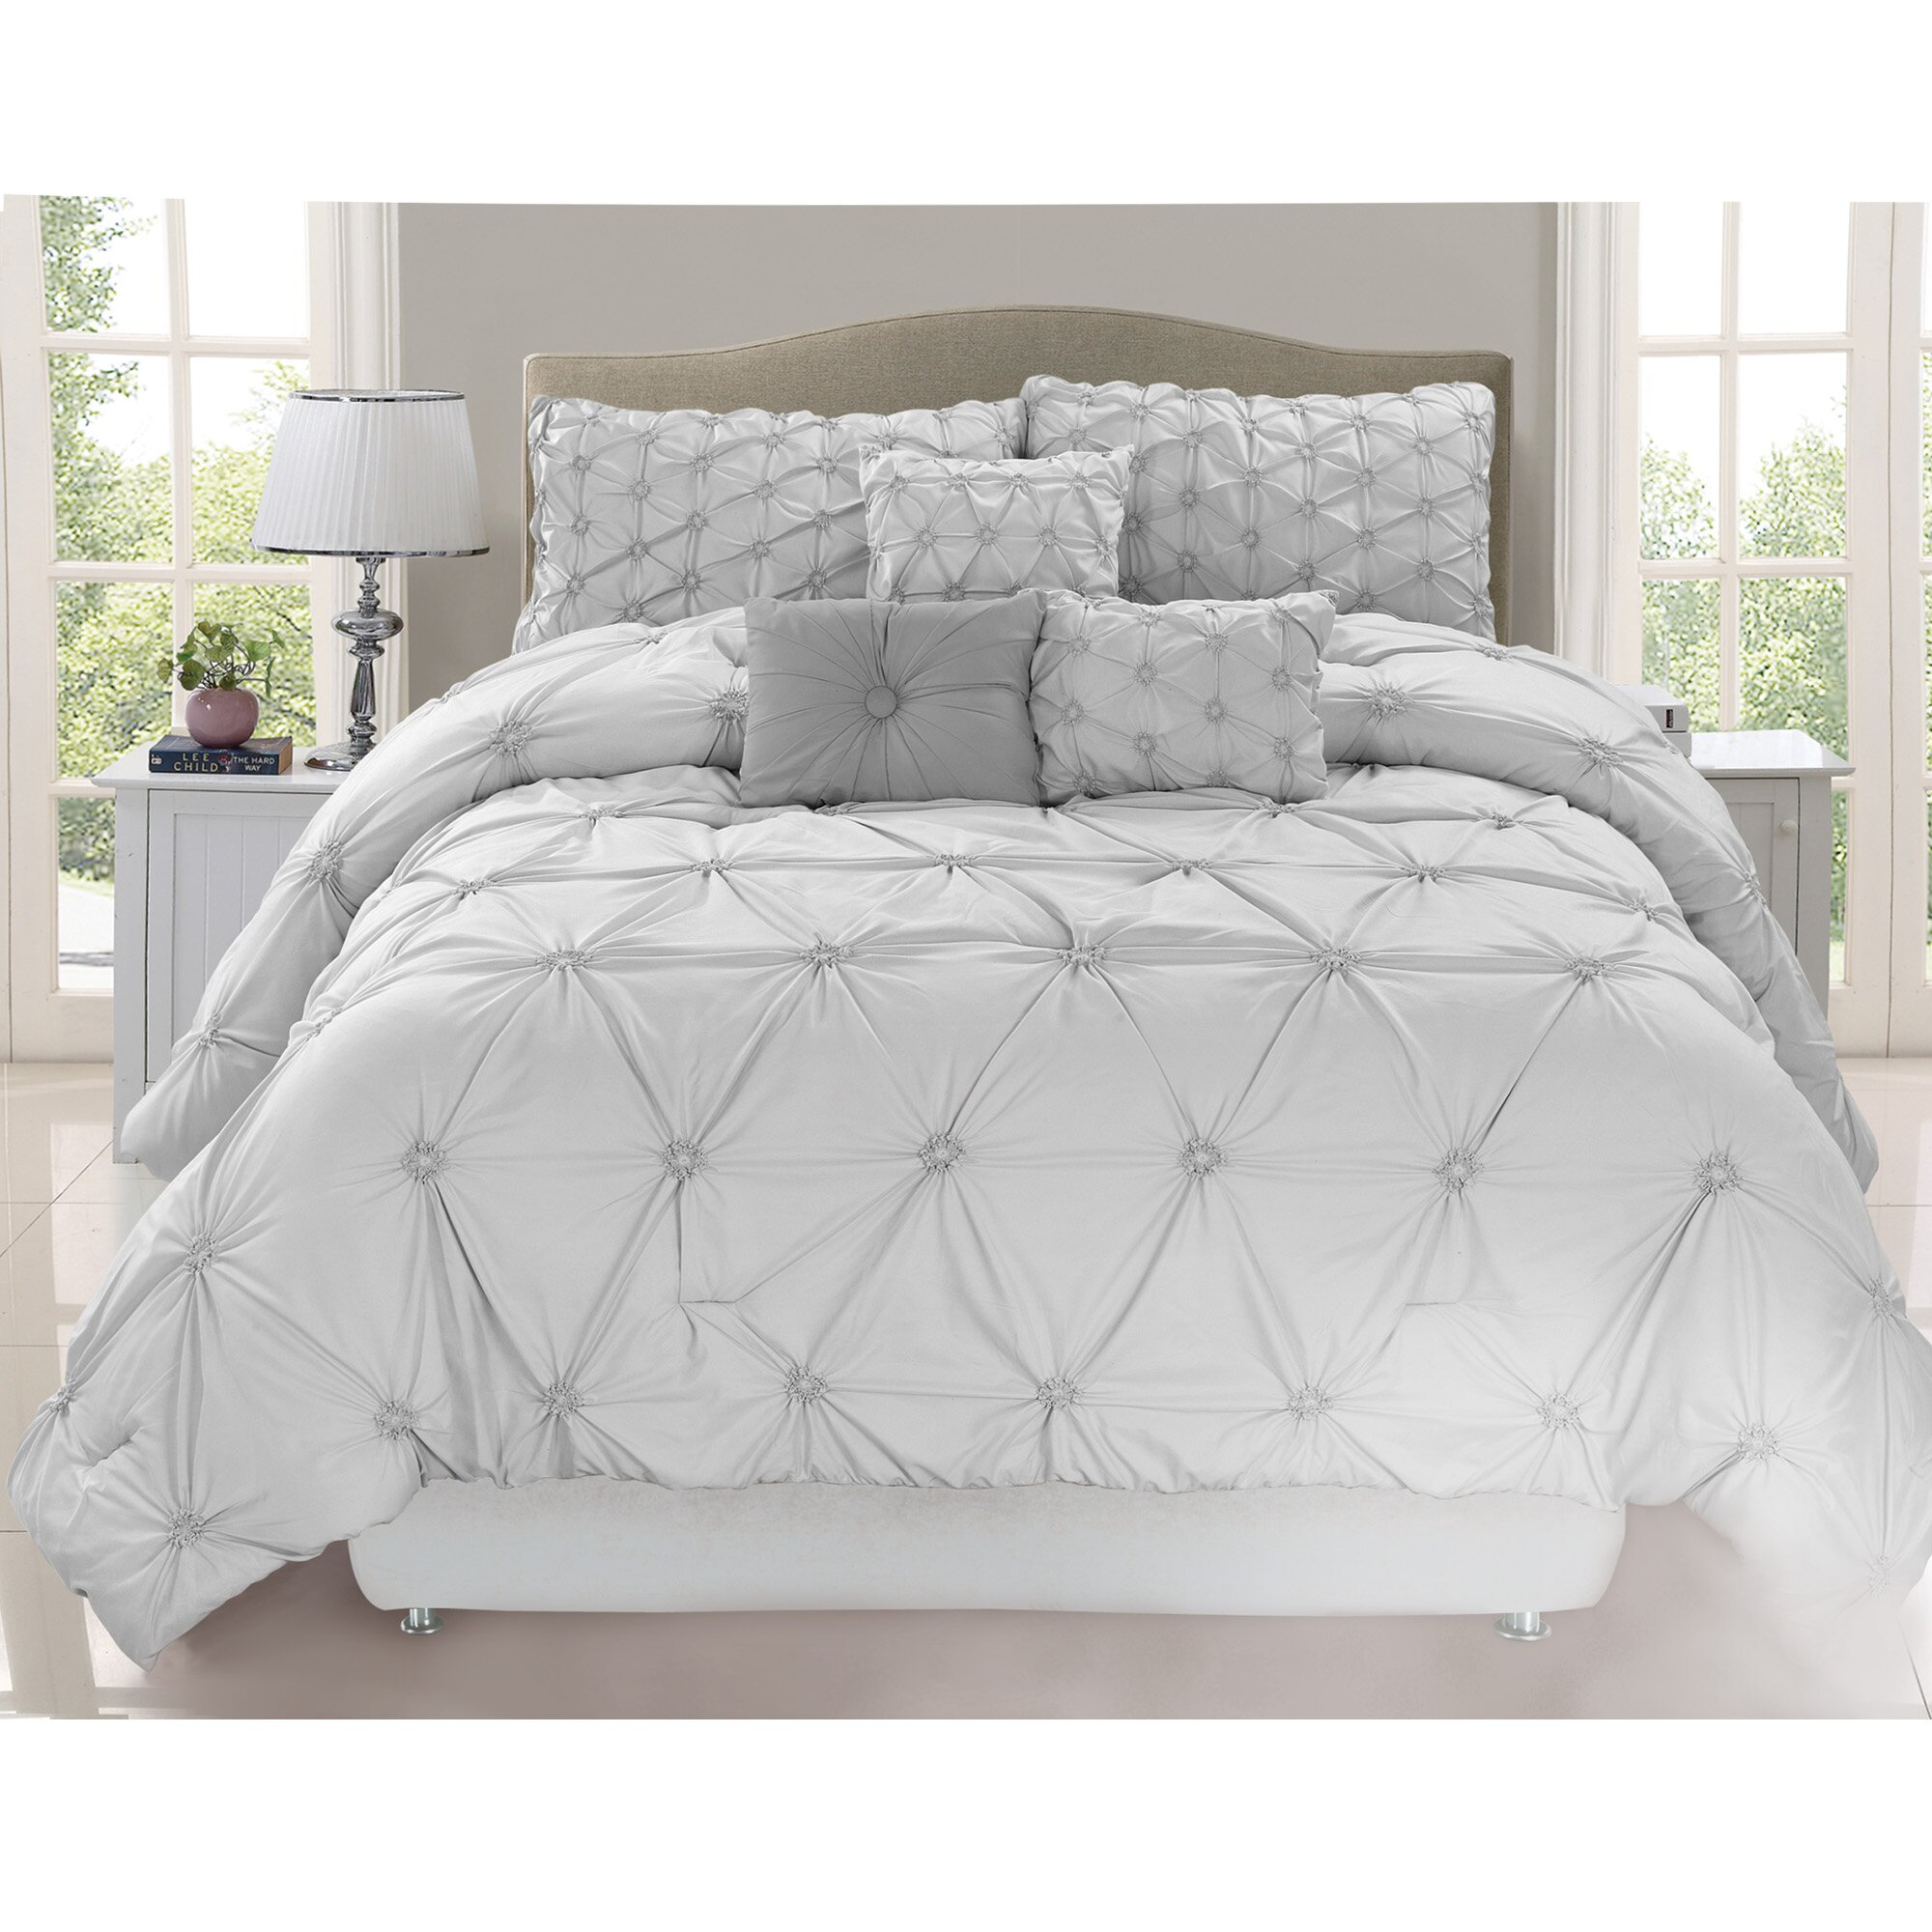 Ophelia Amp Co Halcott 7 Piece Comforter Set Amp Reviews